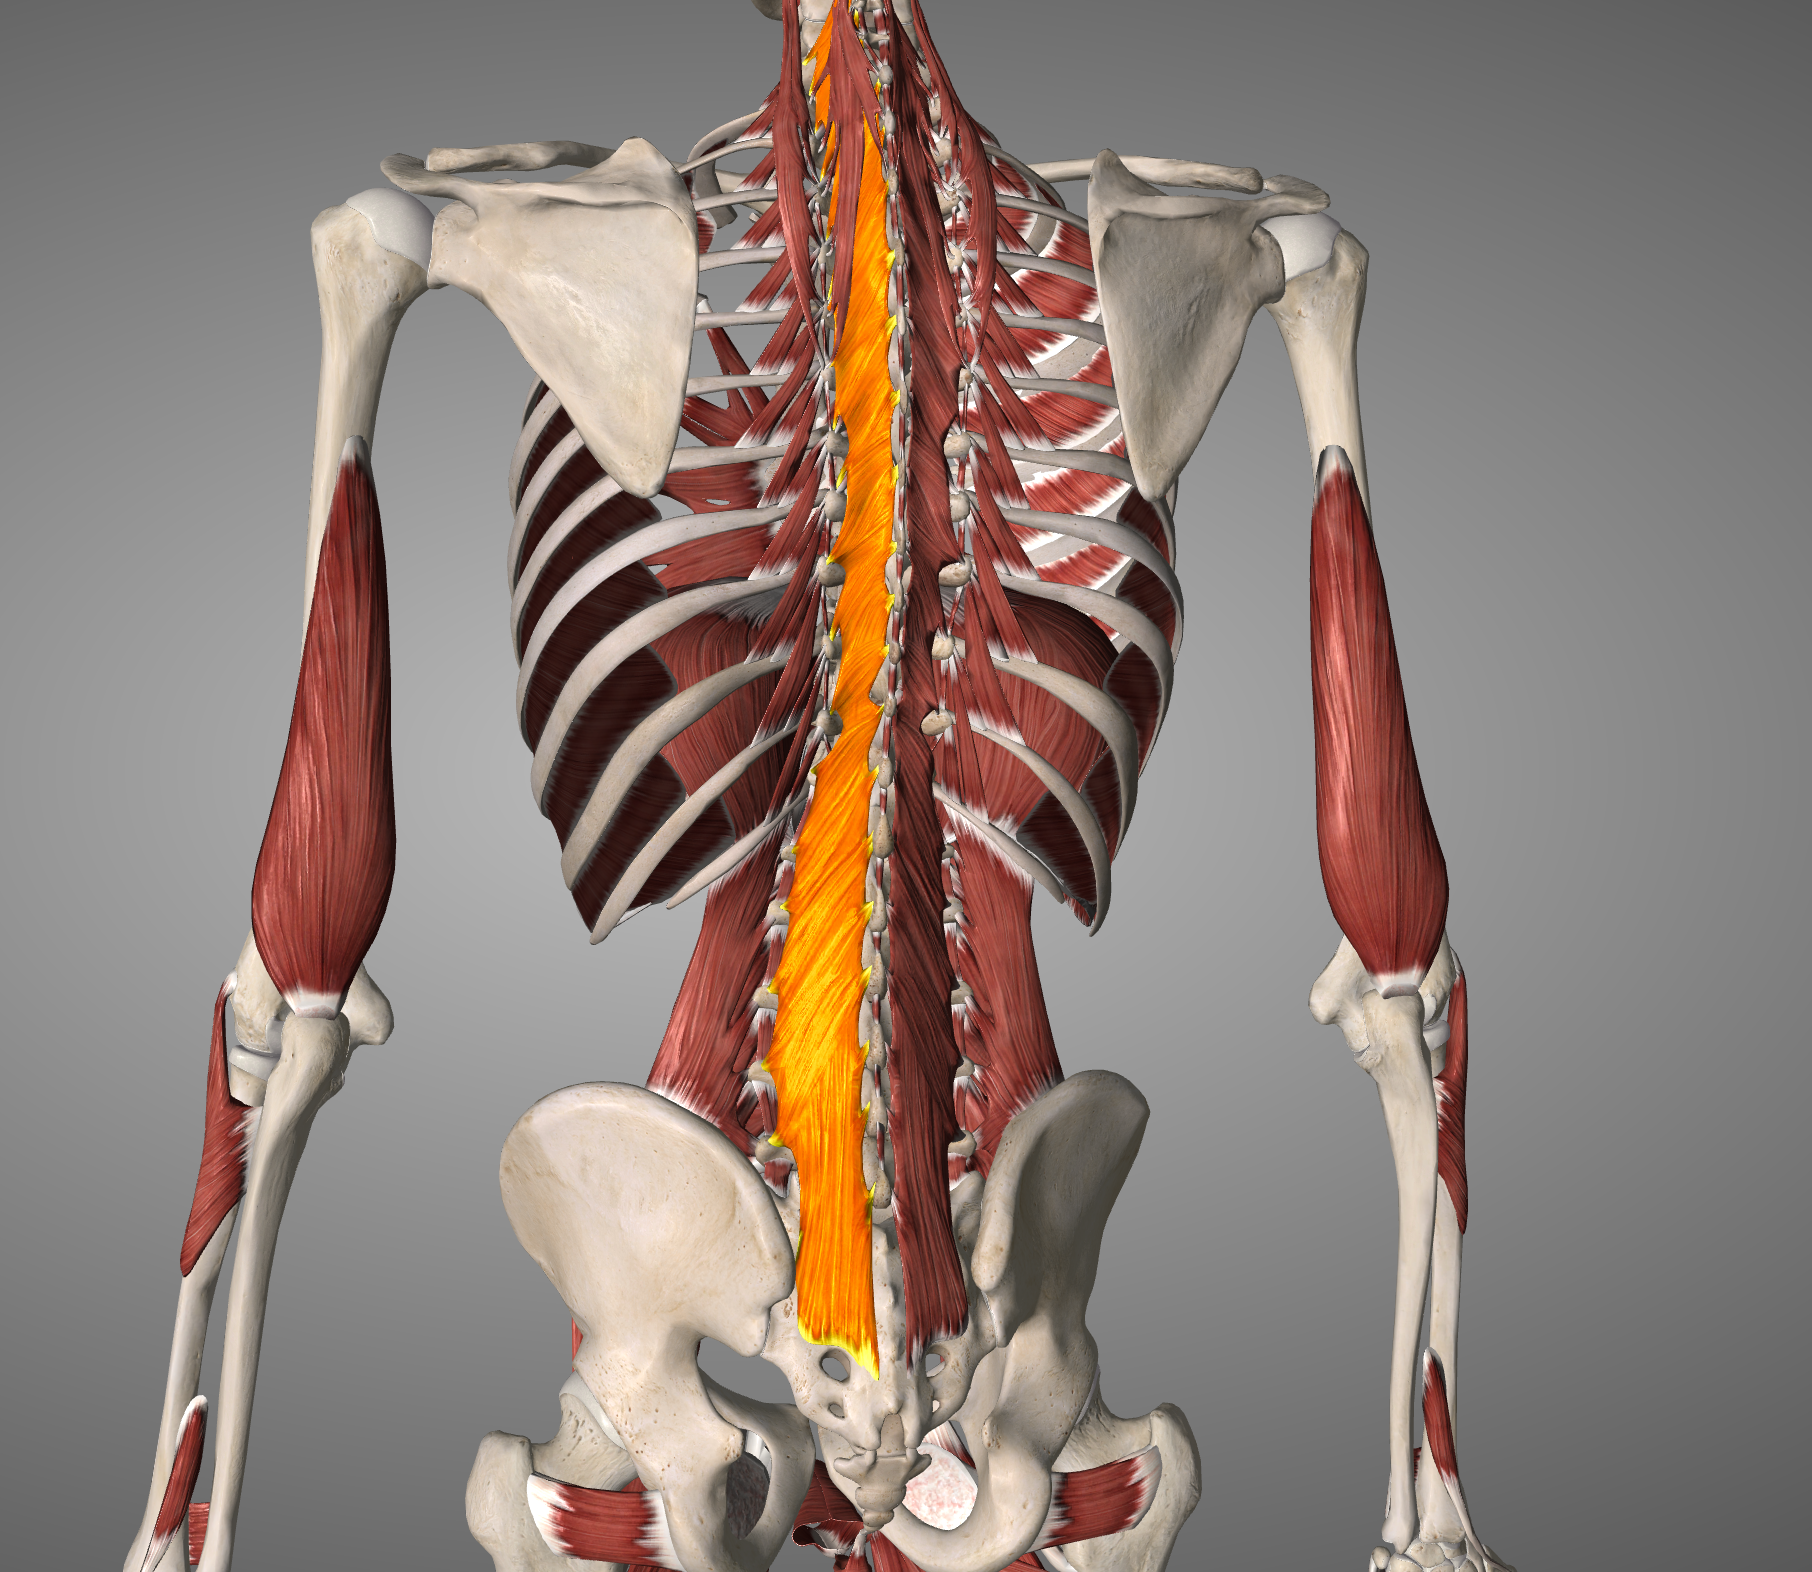 Multifidus runs the entire length of the spine connecting each vertebrae to the one above and below. This article is focused on the lumbar portions of multifidus.